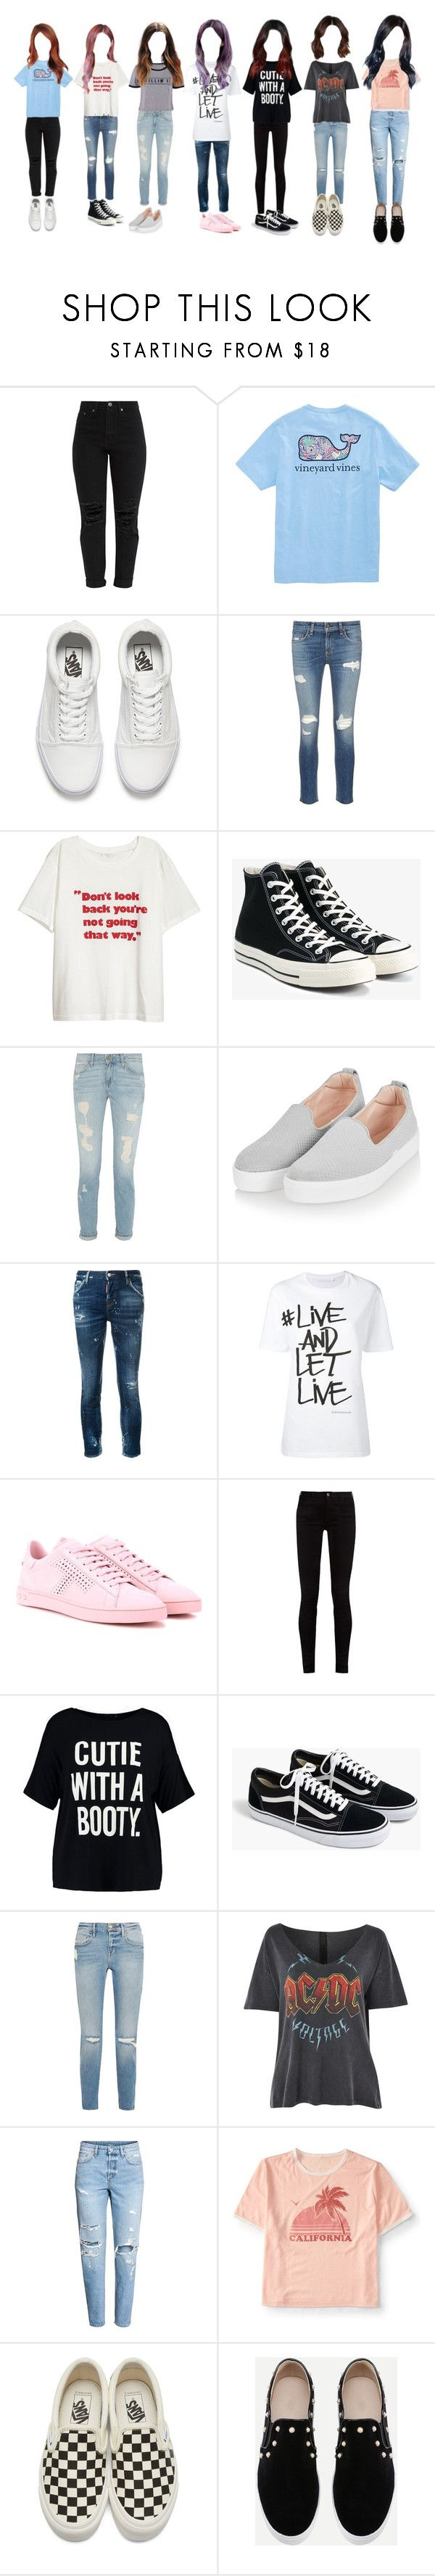 """[RADIO] Star Beam at KBS Cool FM"" by princessmax ❤ liked on Polyvore featuring Vineyard Vines, Vans, rag & bone/JEAN, Converse, Topshop, Dsquared2, Neil Barrett, Tod's, Gucci and Boohoo"